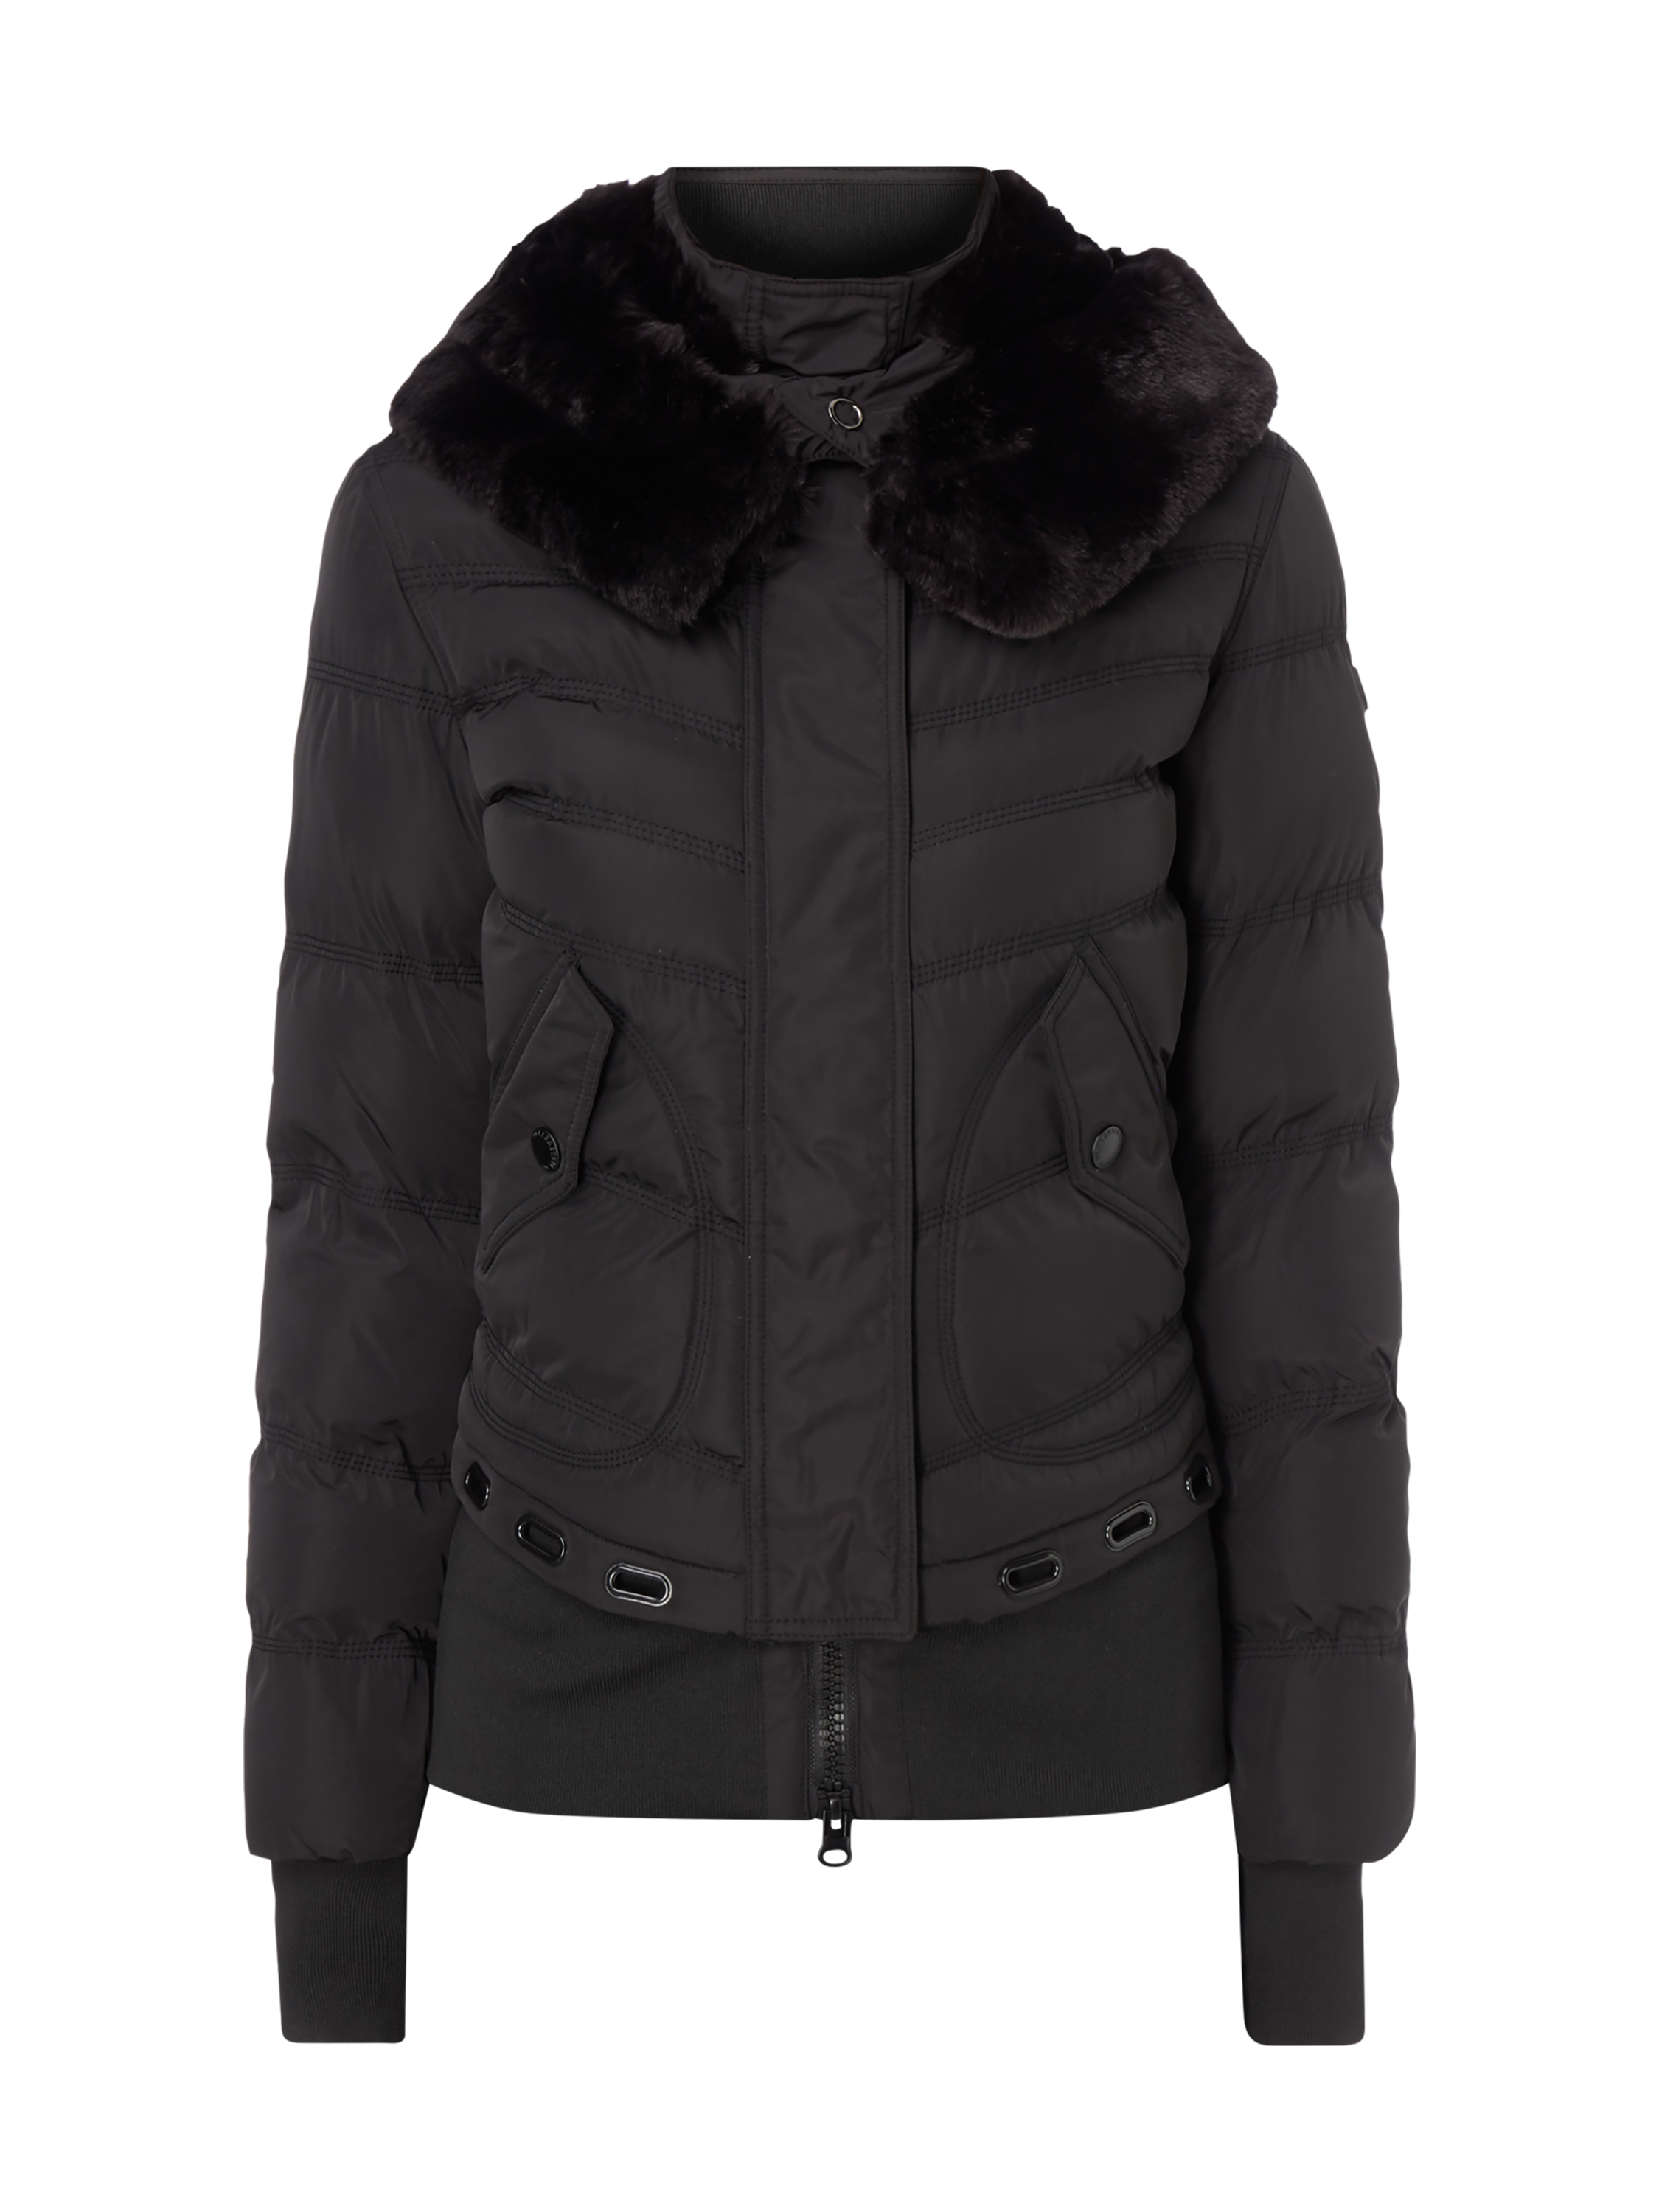 Wellensteyn jacke damen 48